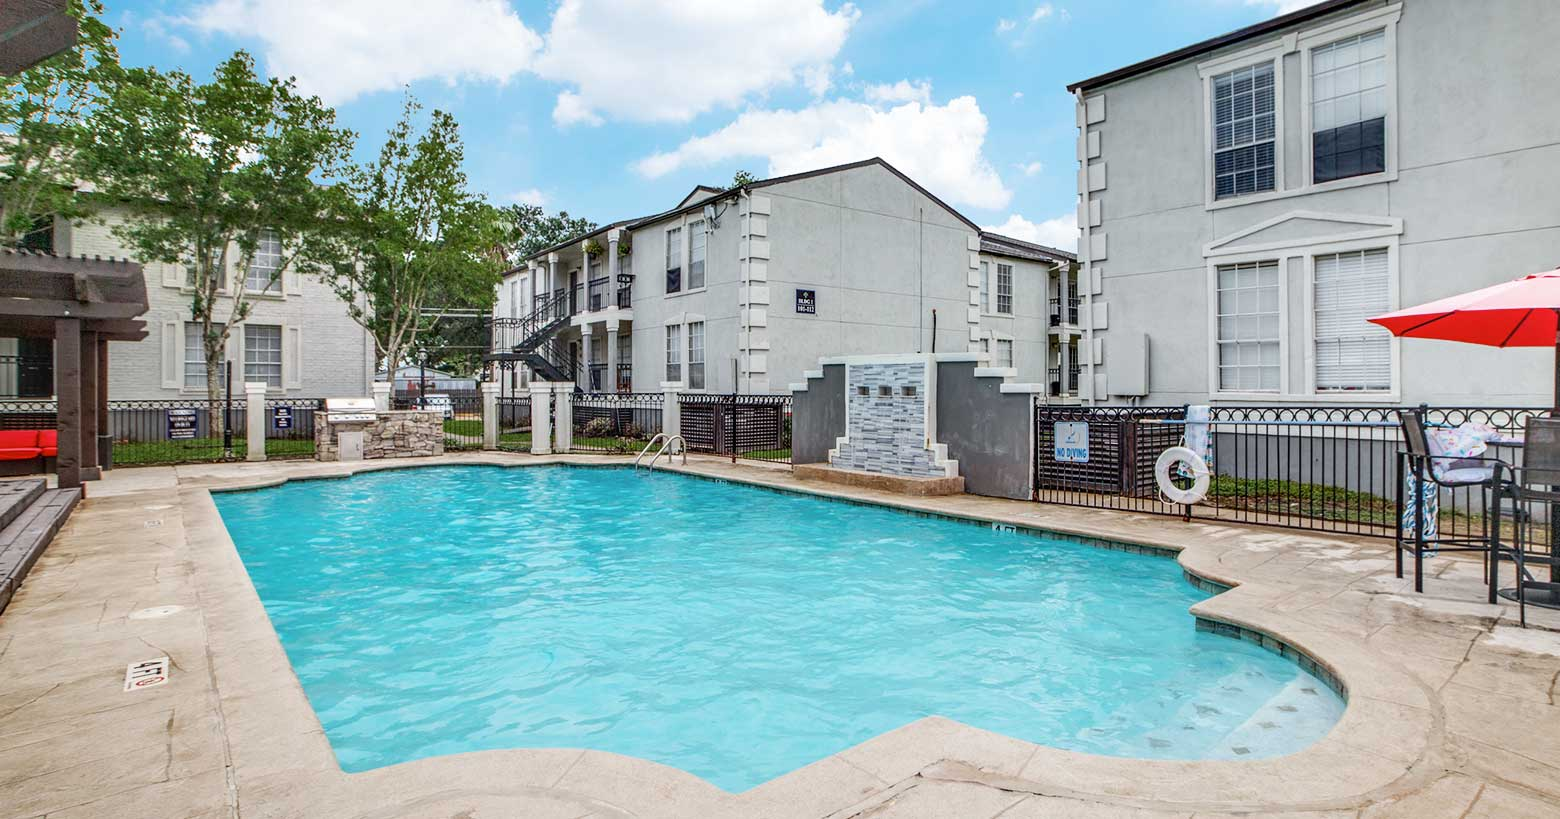 Apartments in seabrook